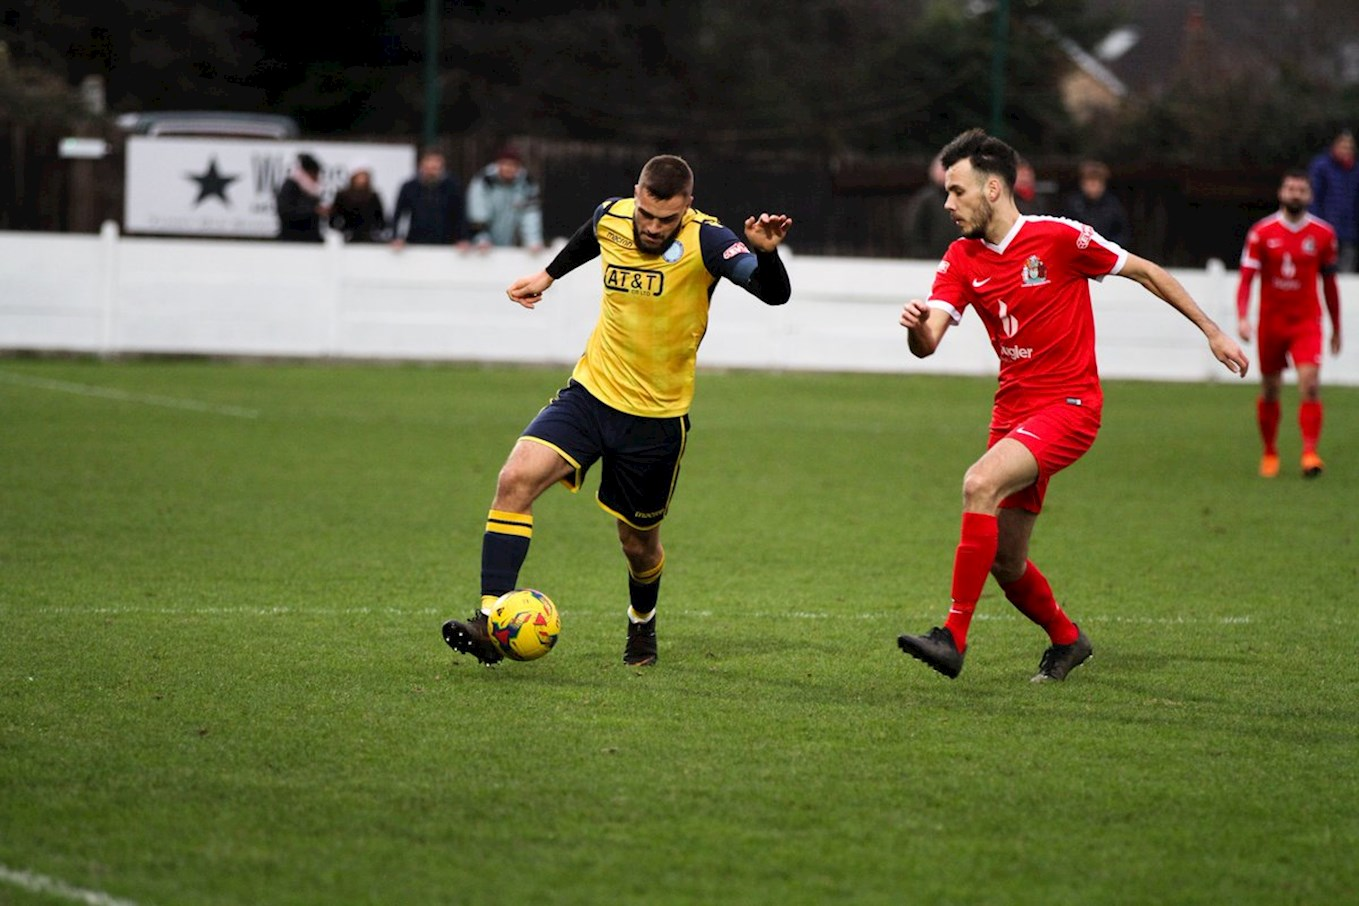 Picture courtesy of Staines Town FC.